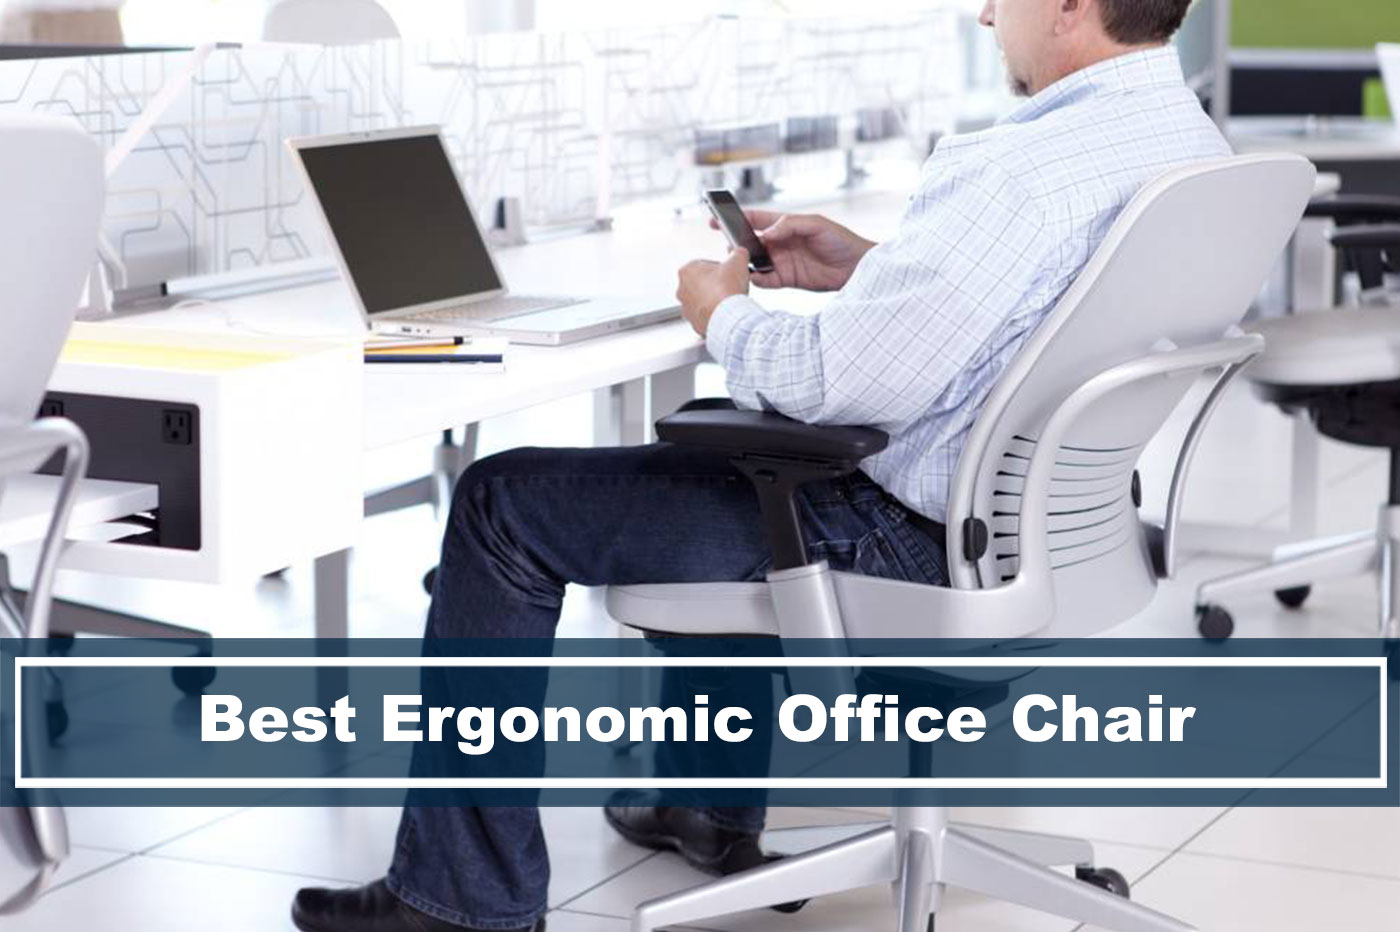 ergonomic chair pros white dining table chairs uk best in 2019 desk advisor s ultimate guide office reviews